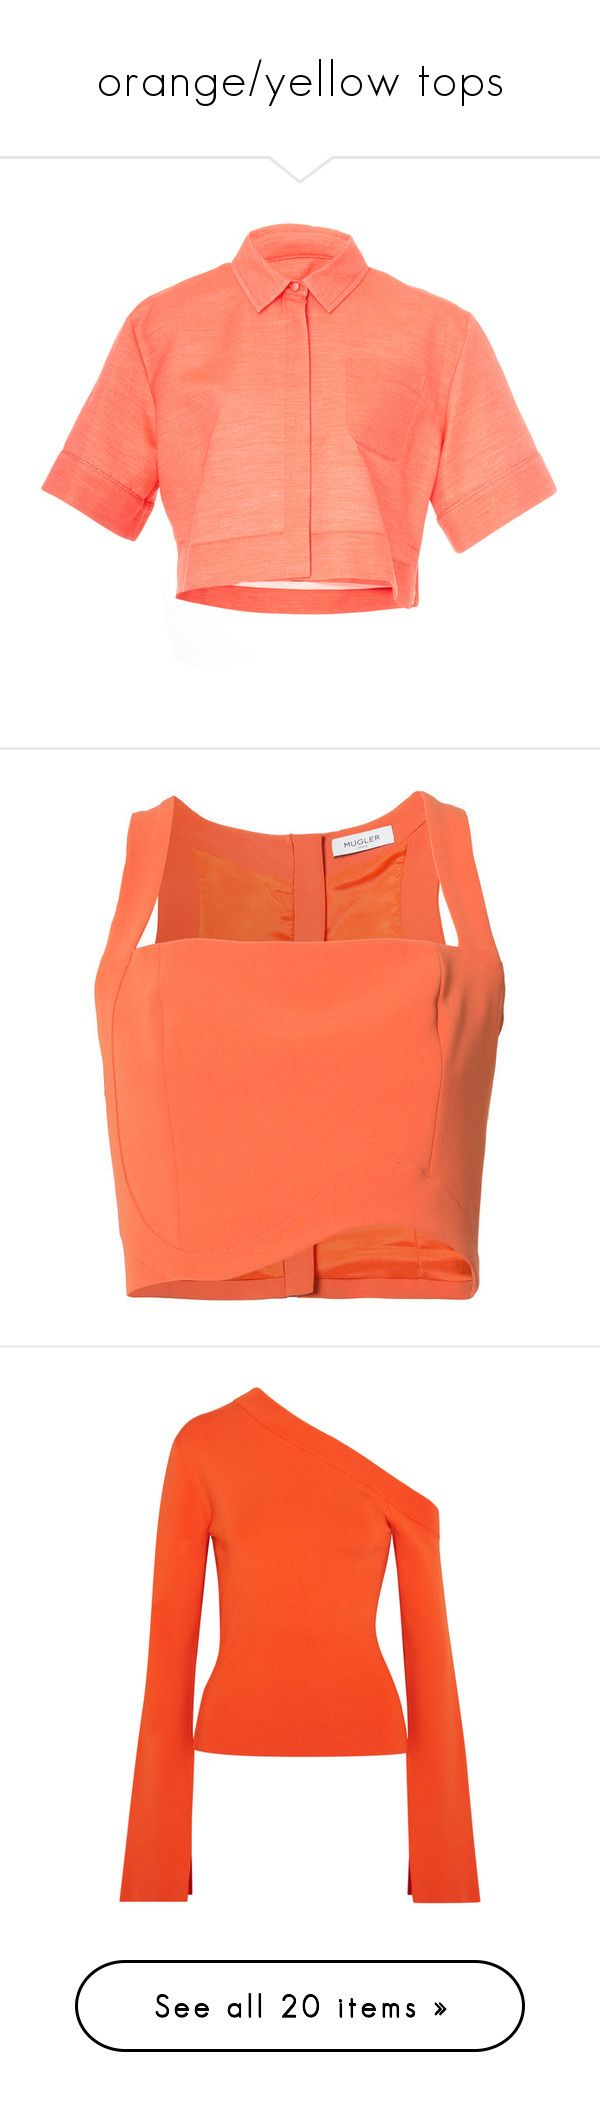 """orange/yellow tops"" by mrstomlinson974 on Polyvore featuring tops, pink, short sleeve shirts, red top, short sleeve collared shirts, collared crop top, red shirt, orange crop top, crop top and cut-out crop tops"